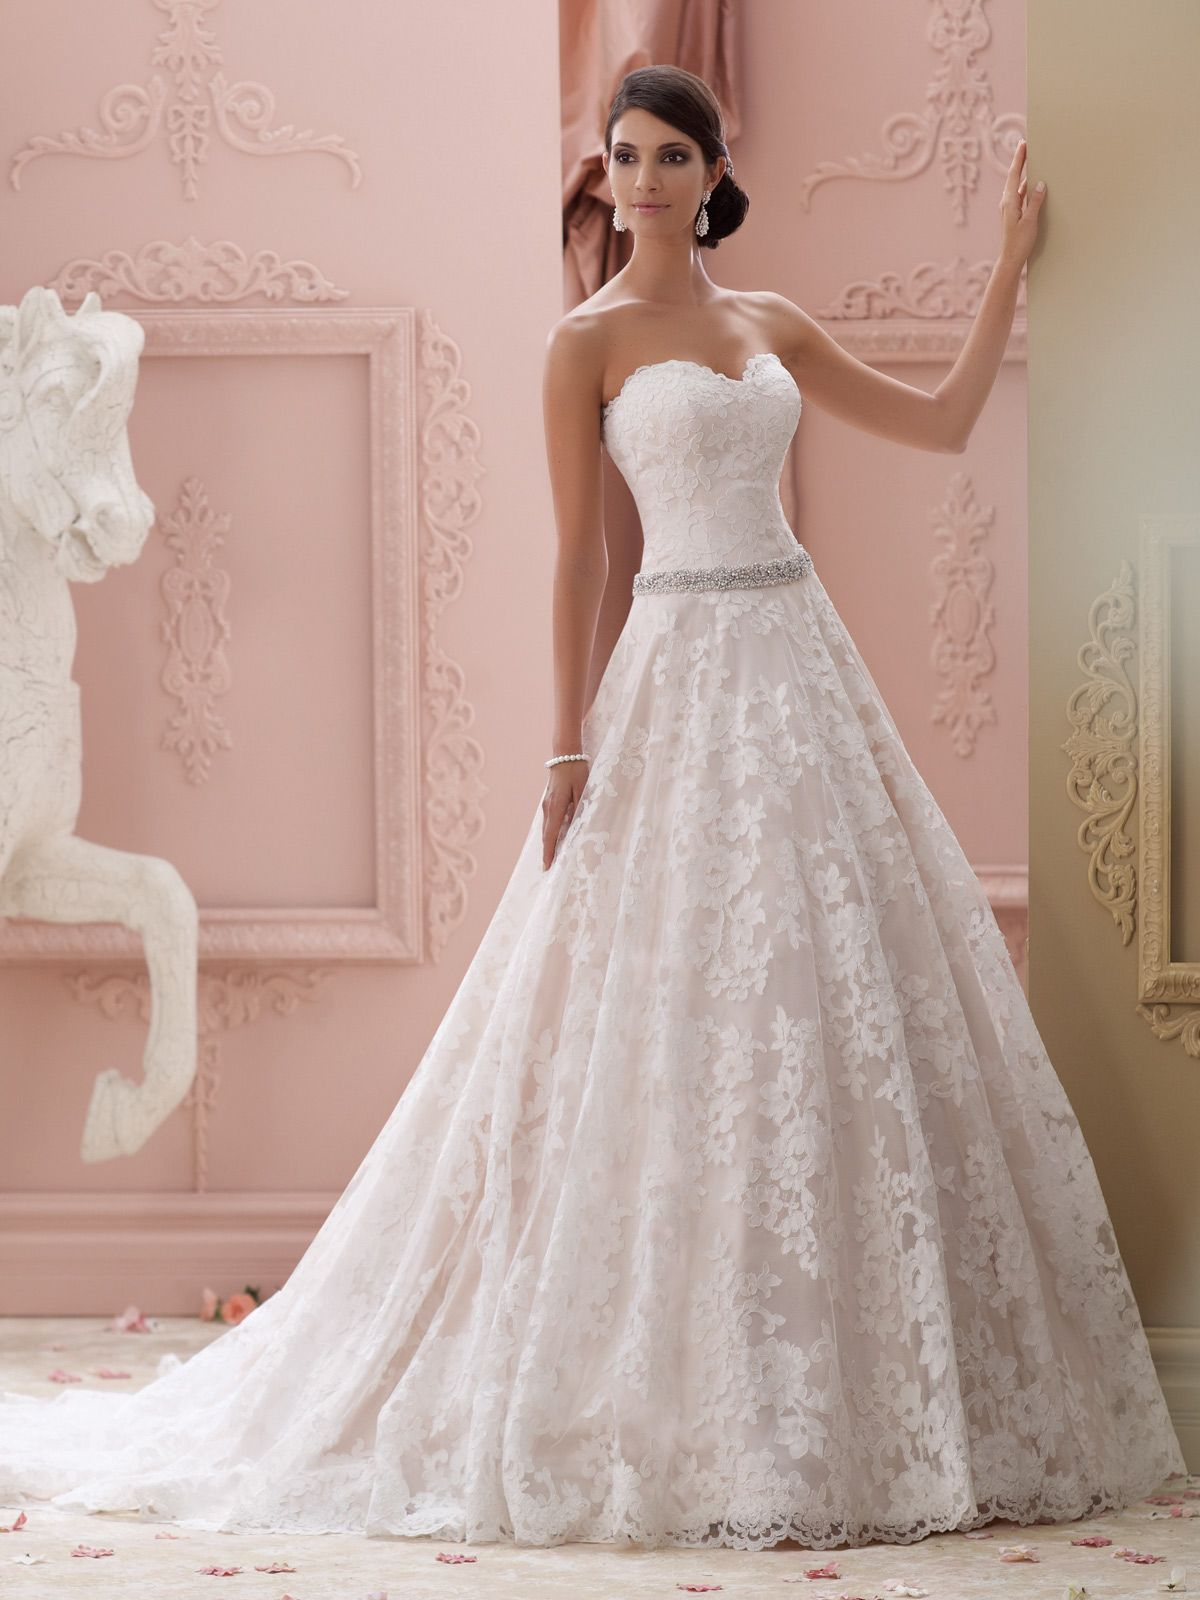 wedding dresses - Google Search | Maybe | Pinterest | Boda, Novios y ...